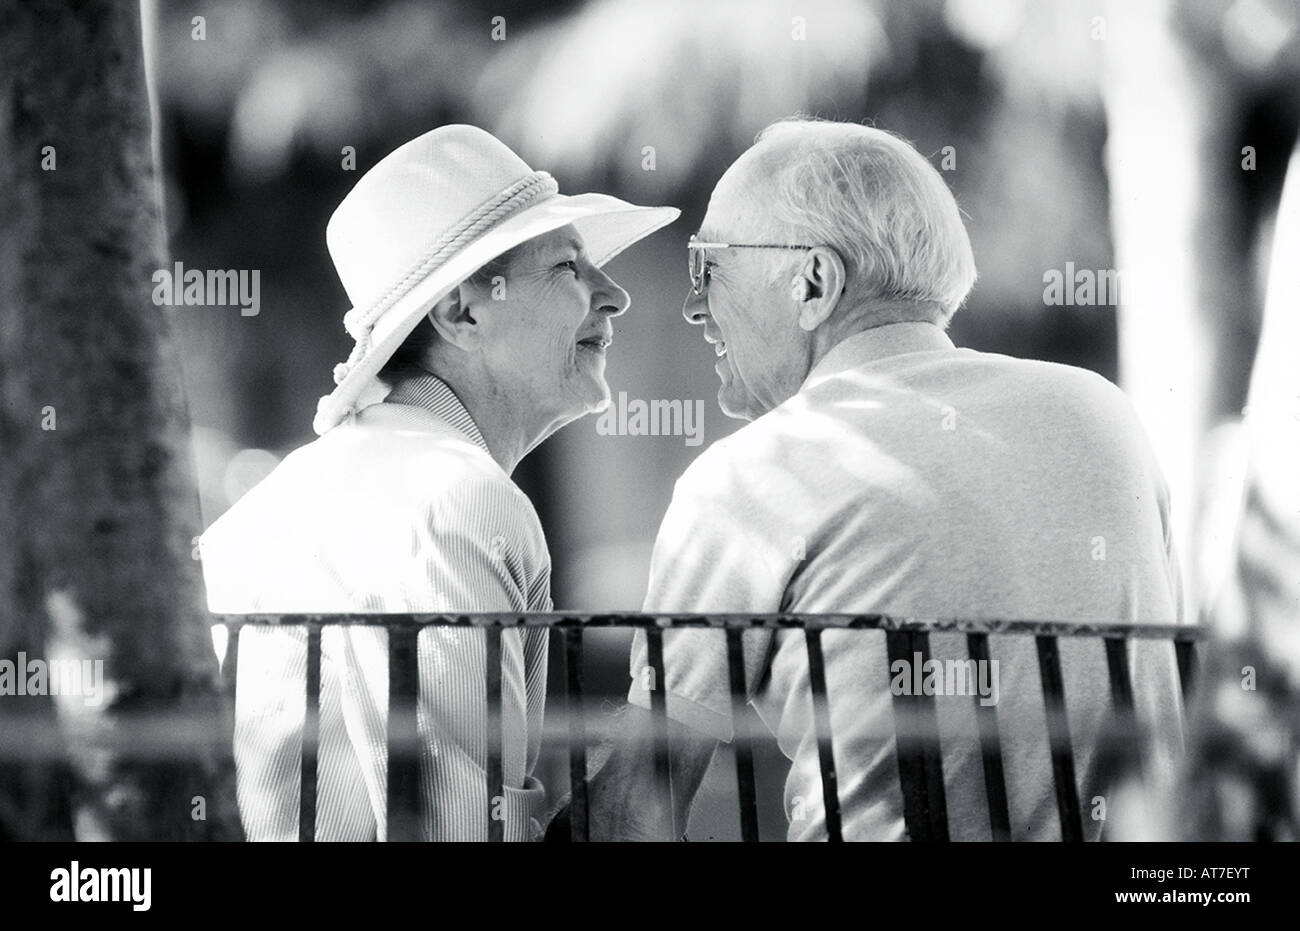 A mature couple talking intimately on a park bench - Stock Image